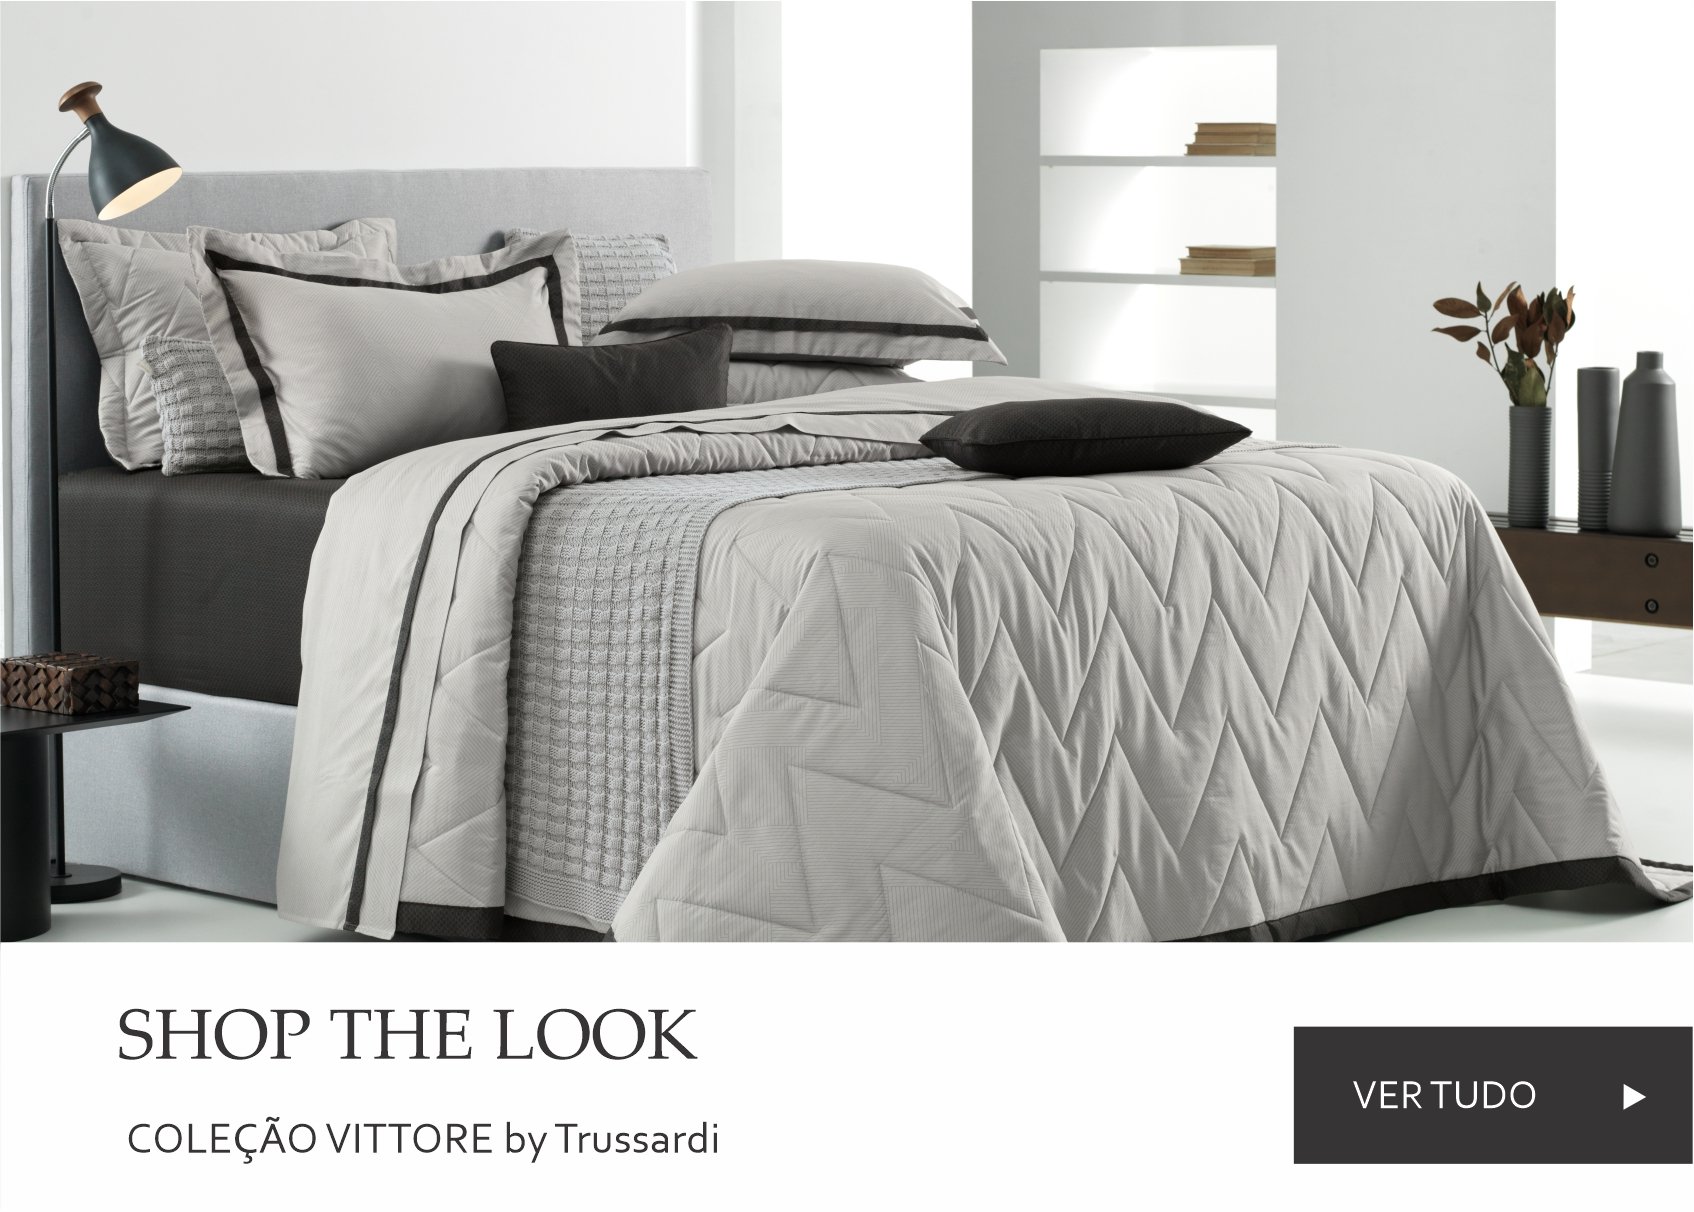 Shop the look 01 - Vittore